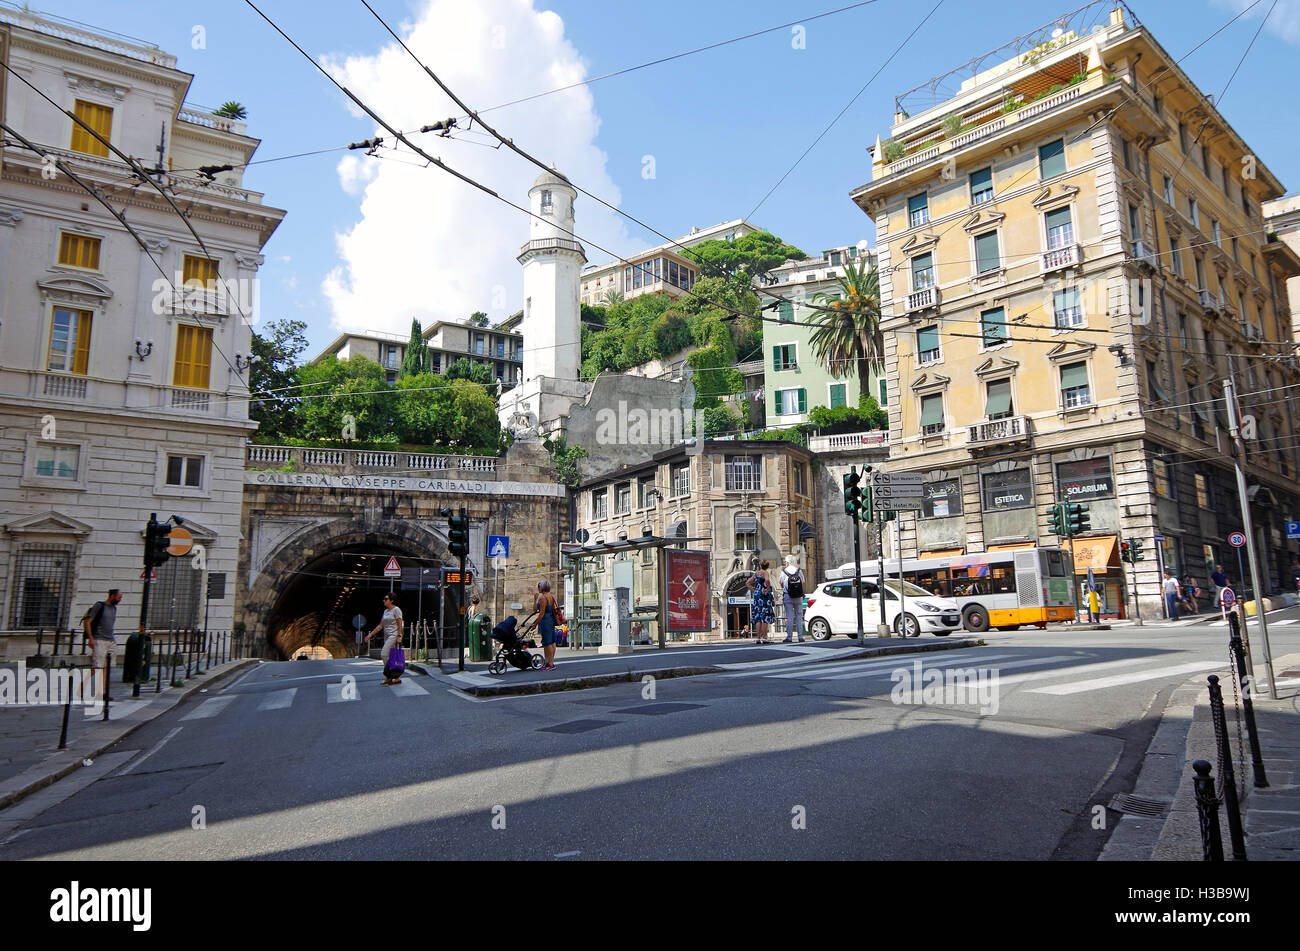 Piazza Portello, a busy intersection in Genoa, Italy, junction of many streets, including the tunnel Galleria Garibaldi - Stock Image